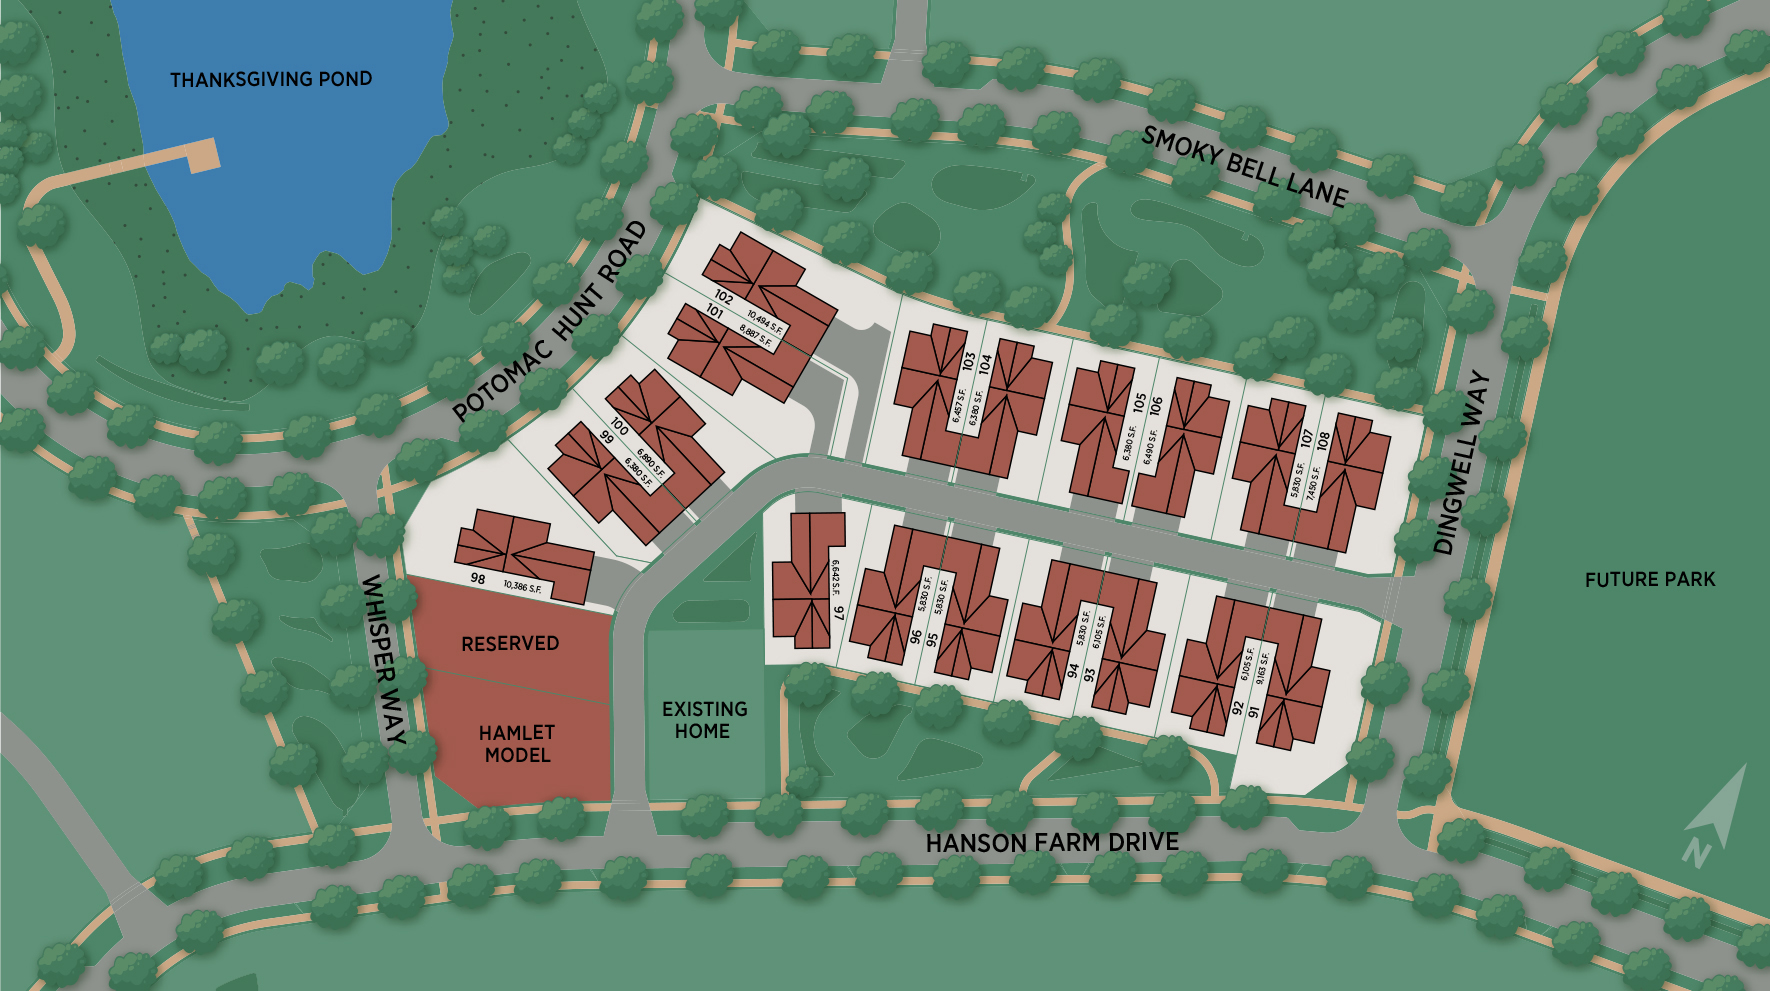 Mt. Prospect - The Hamlet Collection Site Plan